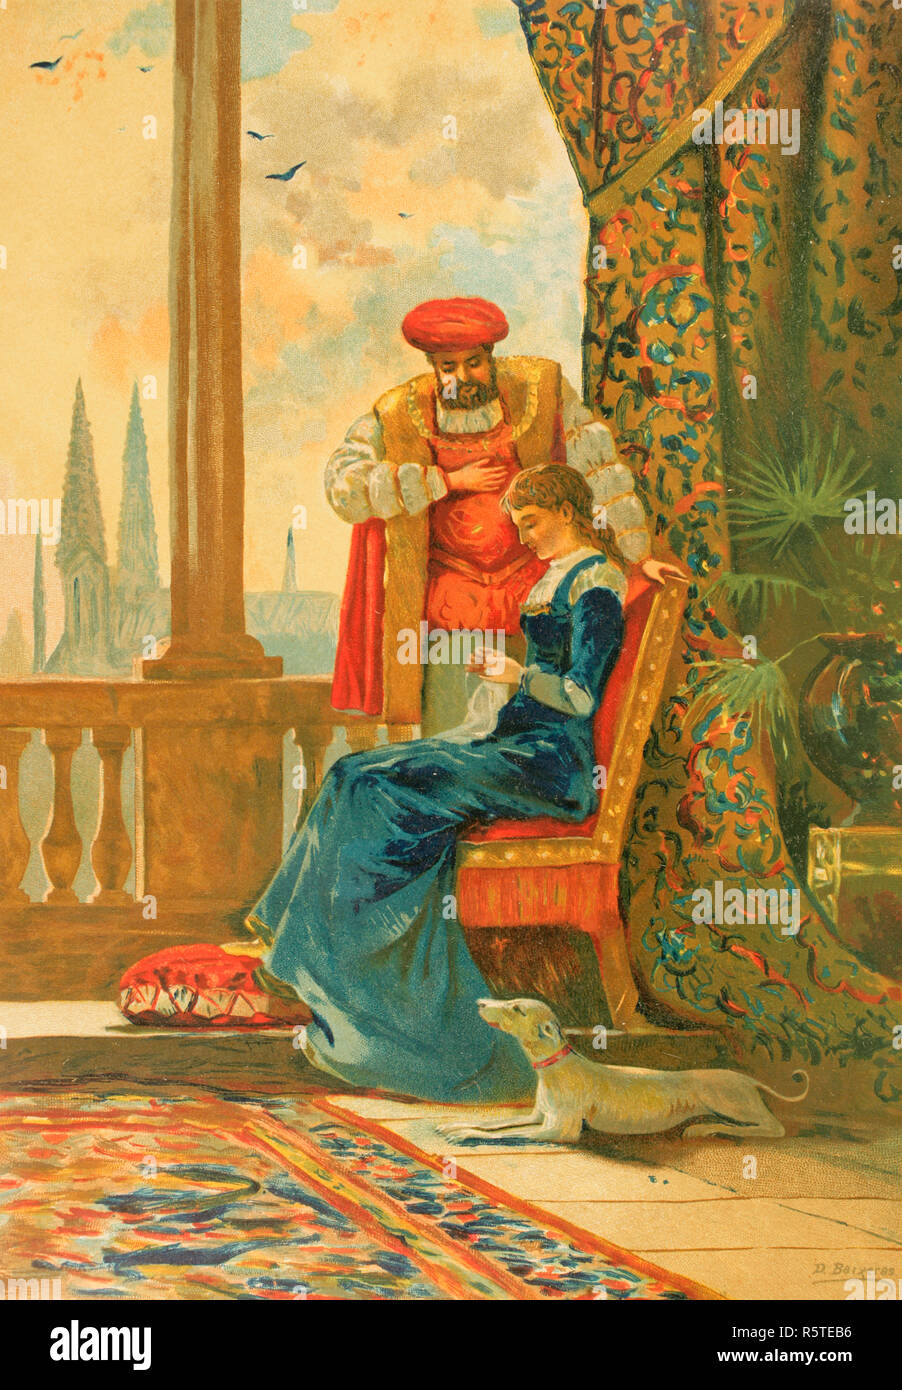 The King of England Henry VIII (1491-1547) with his second wife, Anne Boleyn (1507-1536). Drawing by Dionisio Baixeras (1862-1943). Chromolithography. La Civilizacion (The Civilization), volume III, 1882. - Stock Image